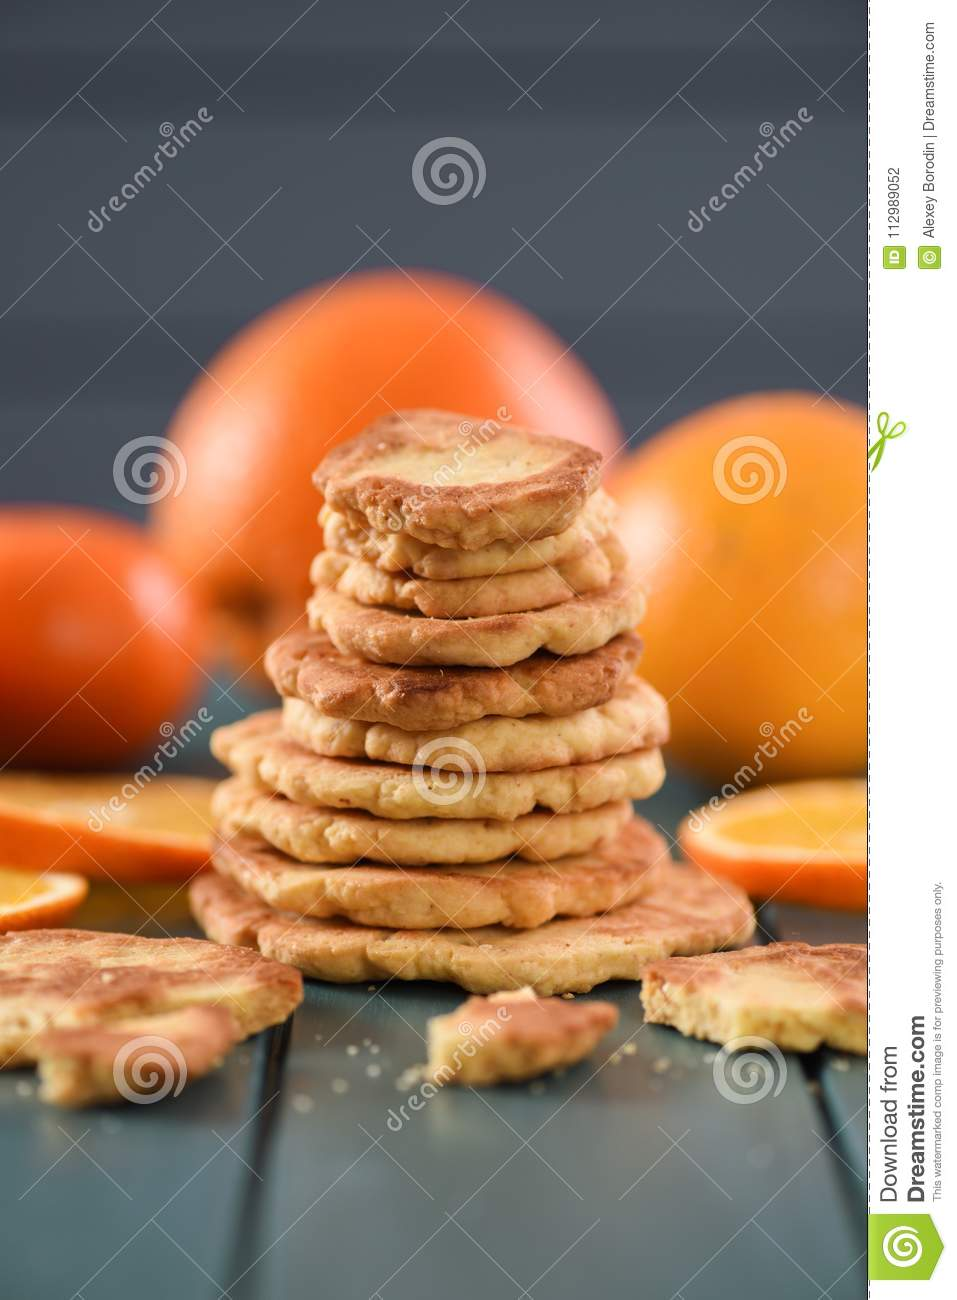 Healthy snack. Pile of homemade cookies and oranges on dark blue